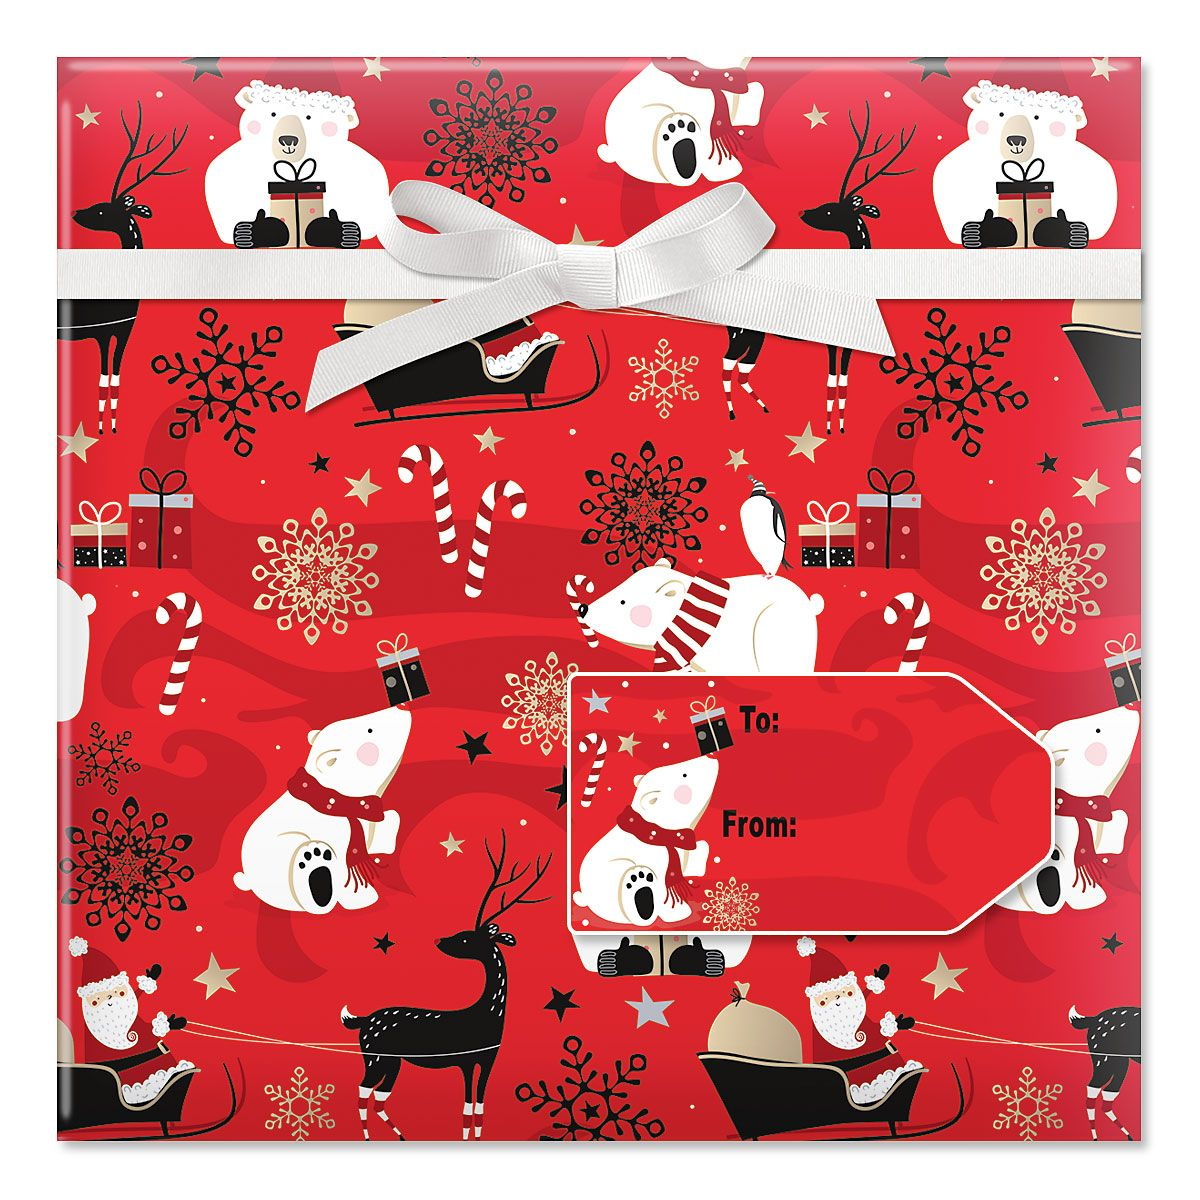 Holiday Cheer Jumbo Rolled Gift Wrap and Labels